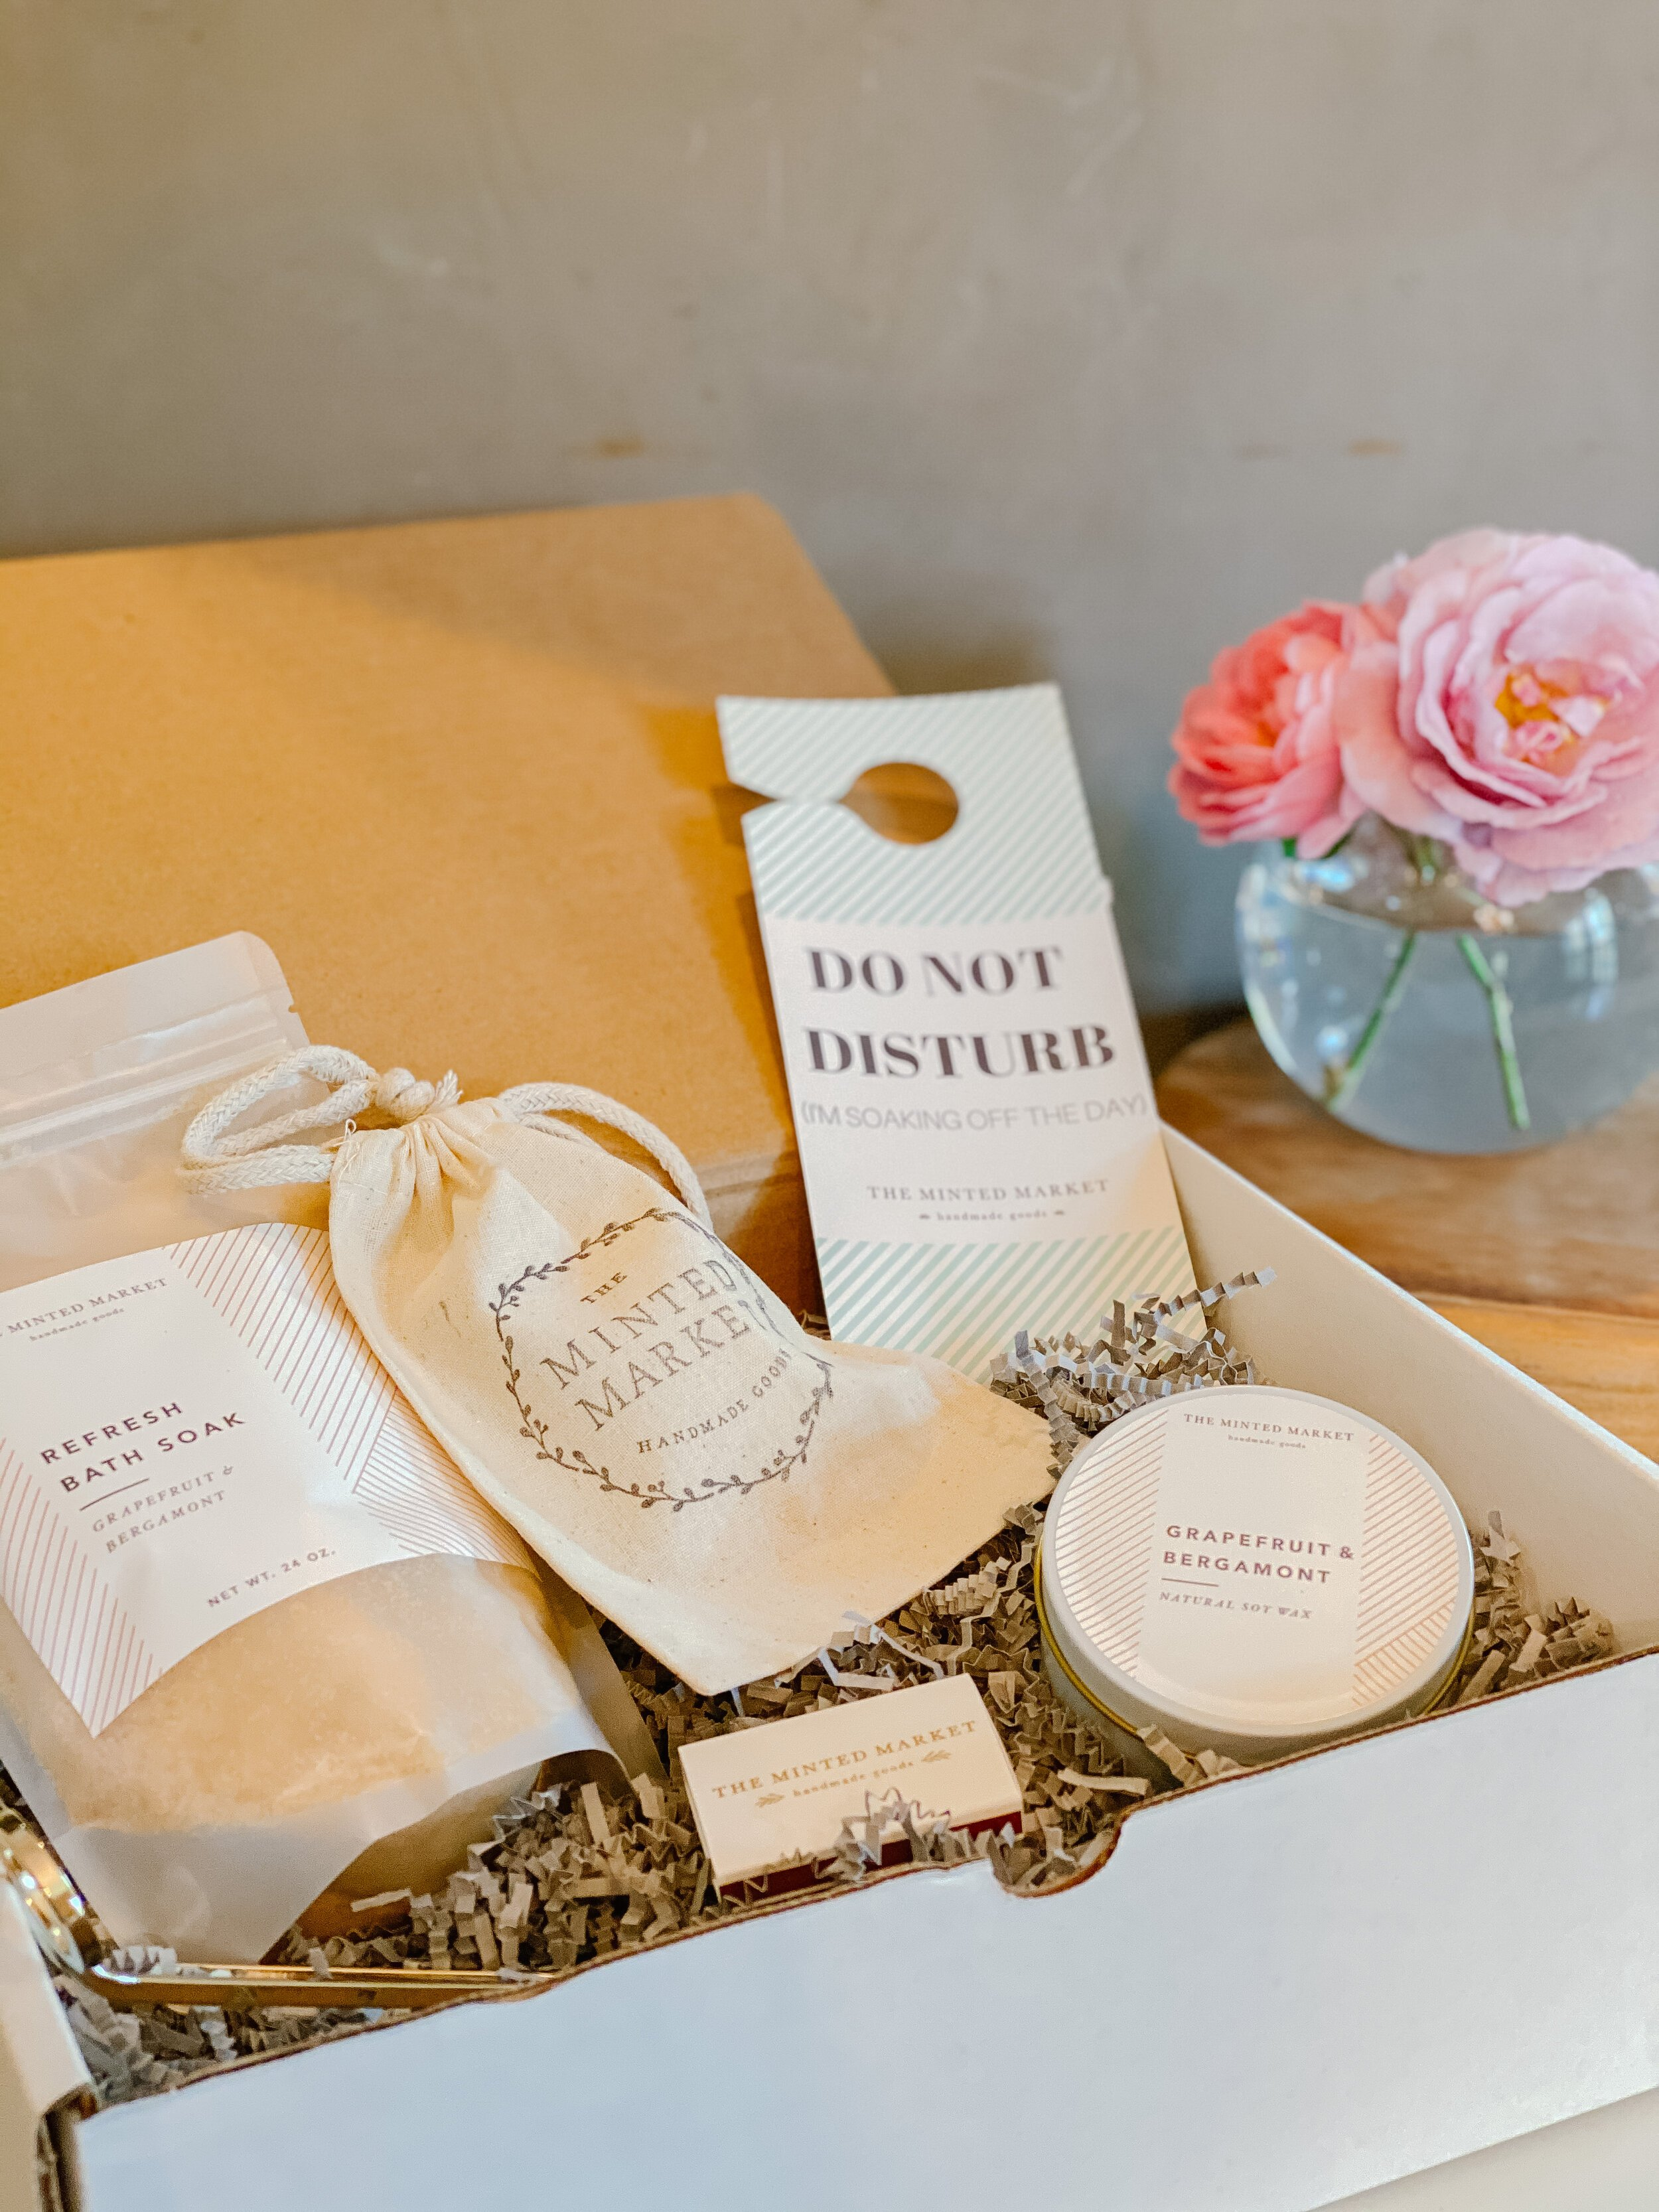 Bath soak gift basket made by The Minted Market